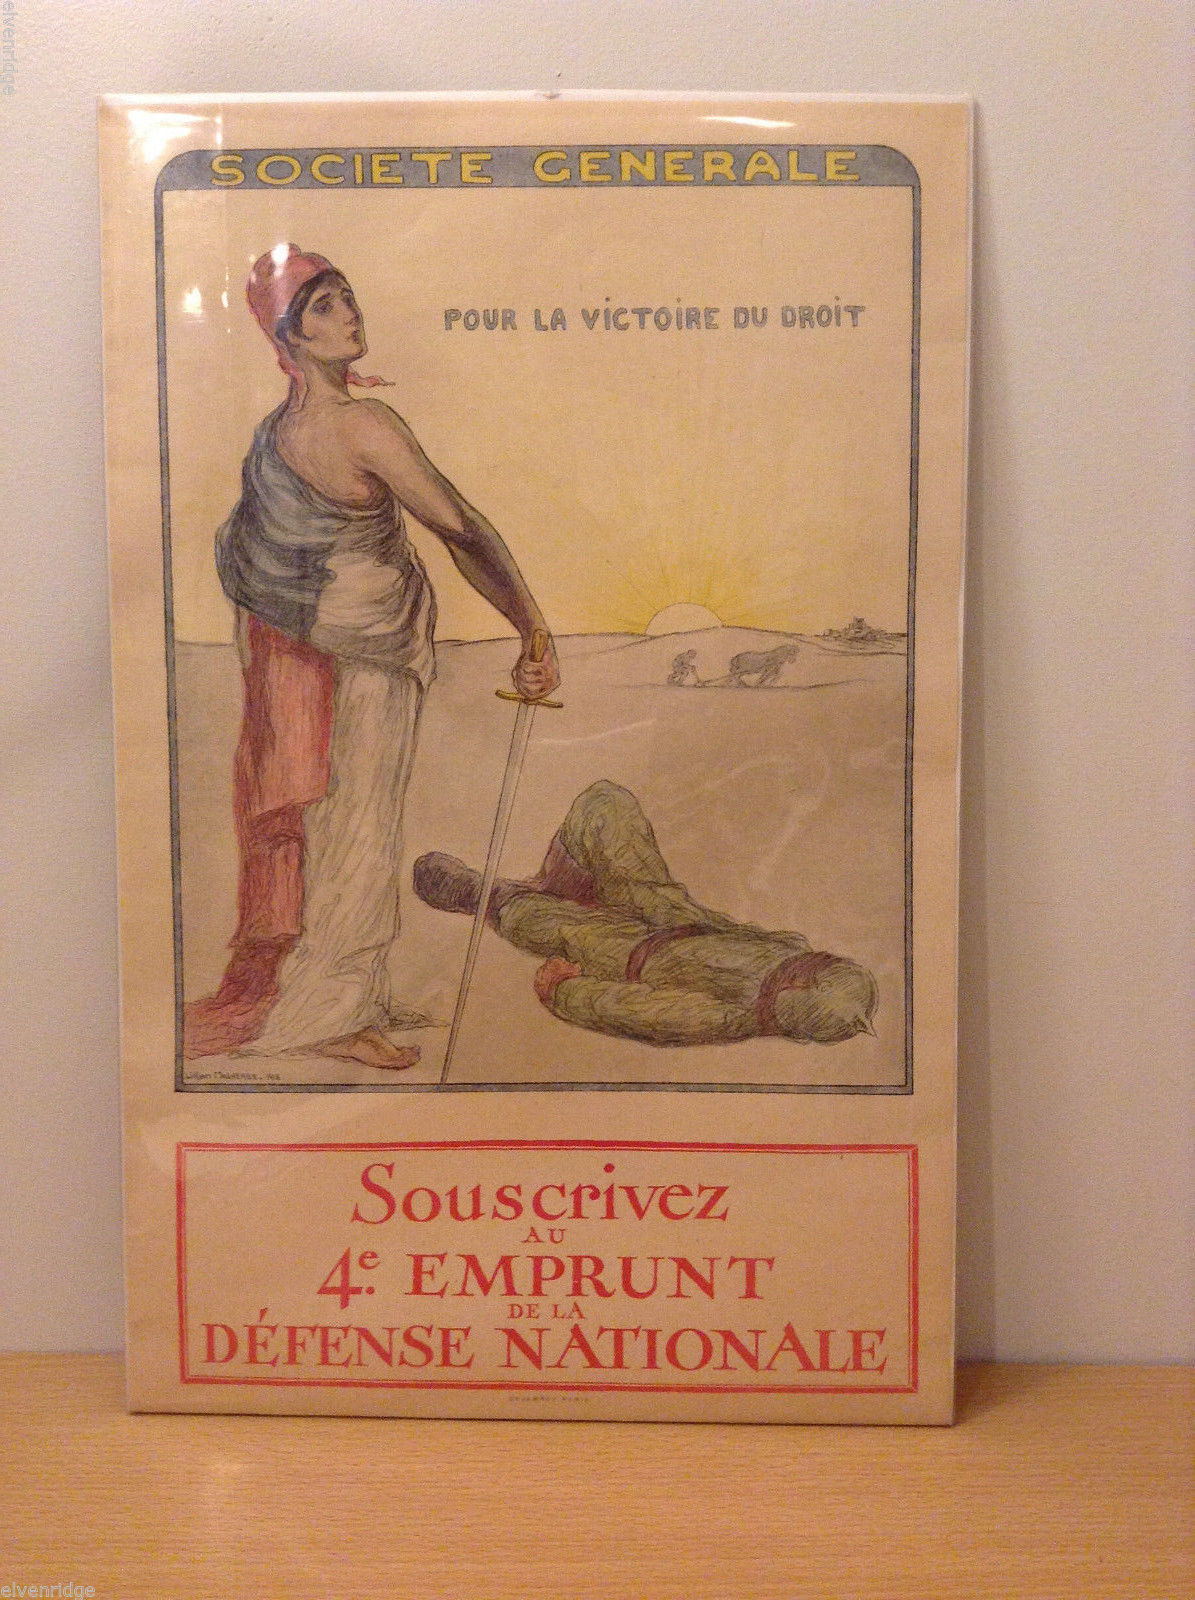 Vintage WW1 French Poster Souscrivez au 4e Emprunt de la Defense Nationale